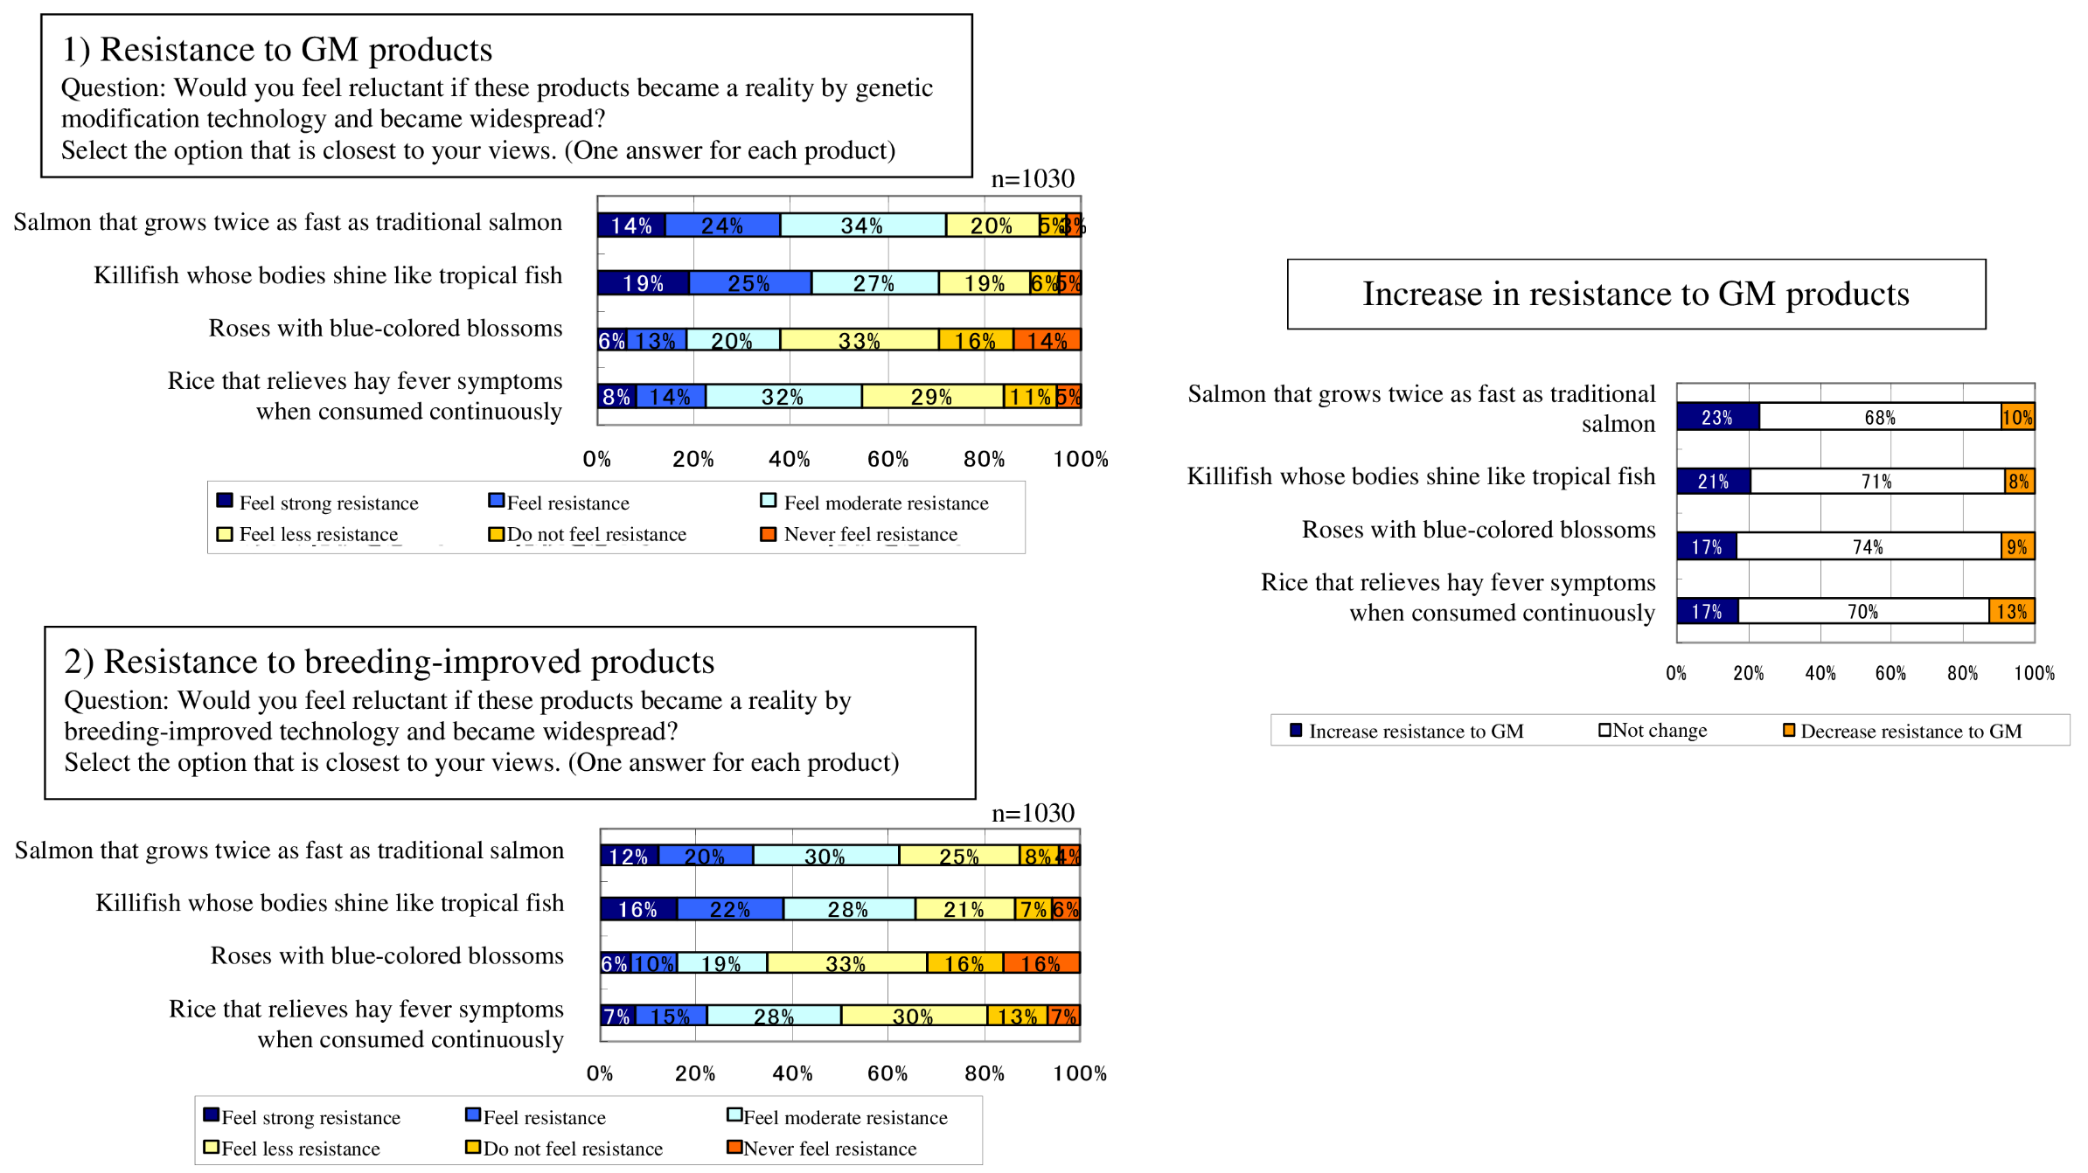 ijmr ese consumer perceptions of genetically modified food change in consumer resistance to gm and breeding improved food gm genetically modified